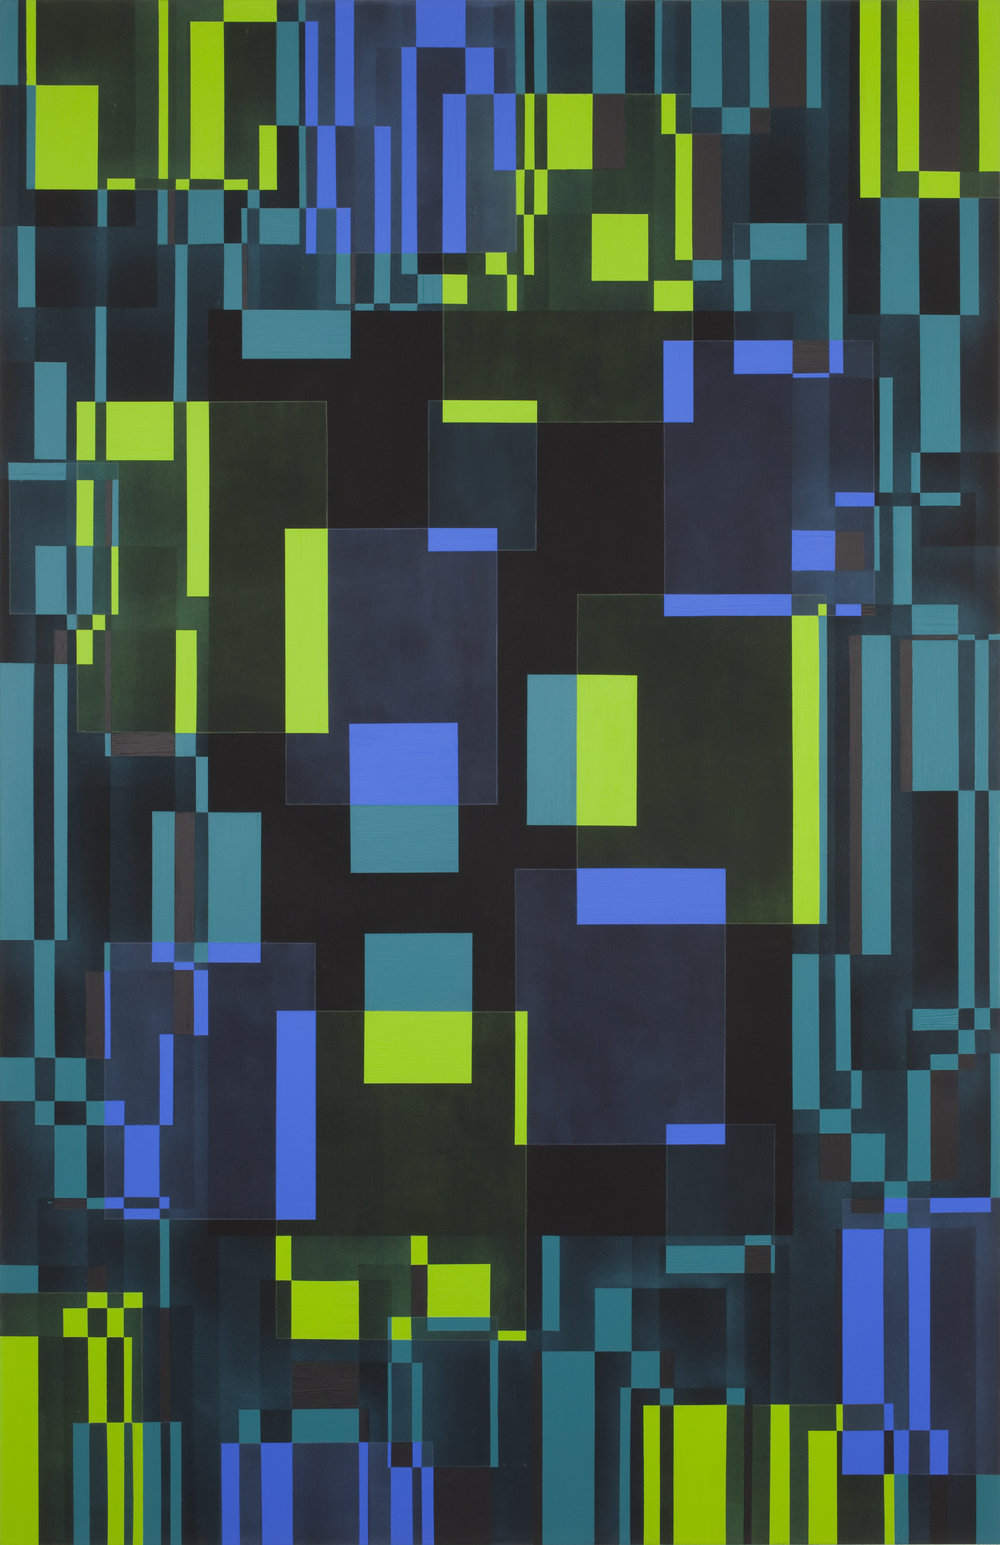 - PRICE: € (EUR) 11.700. Marianne Therese Grønnow. Light. Dusk. Darkness, 2012. Acrylic on canvas. 240 x 140 cm.